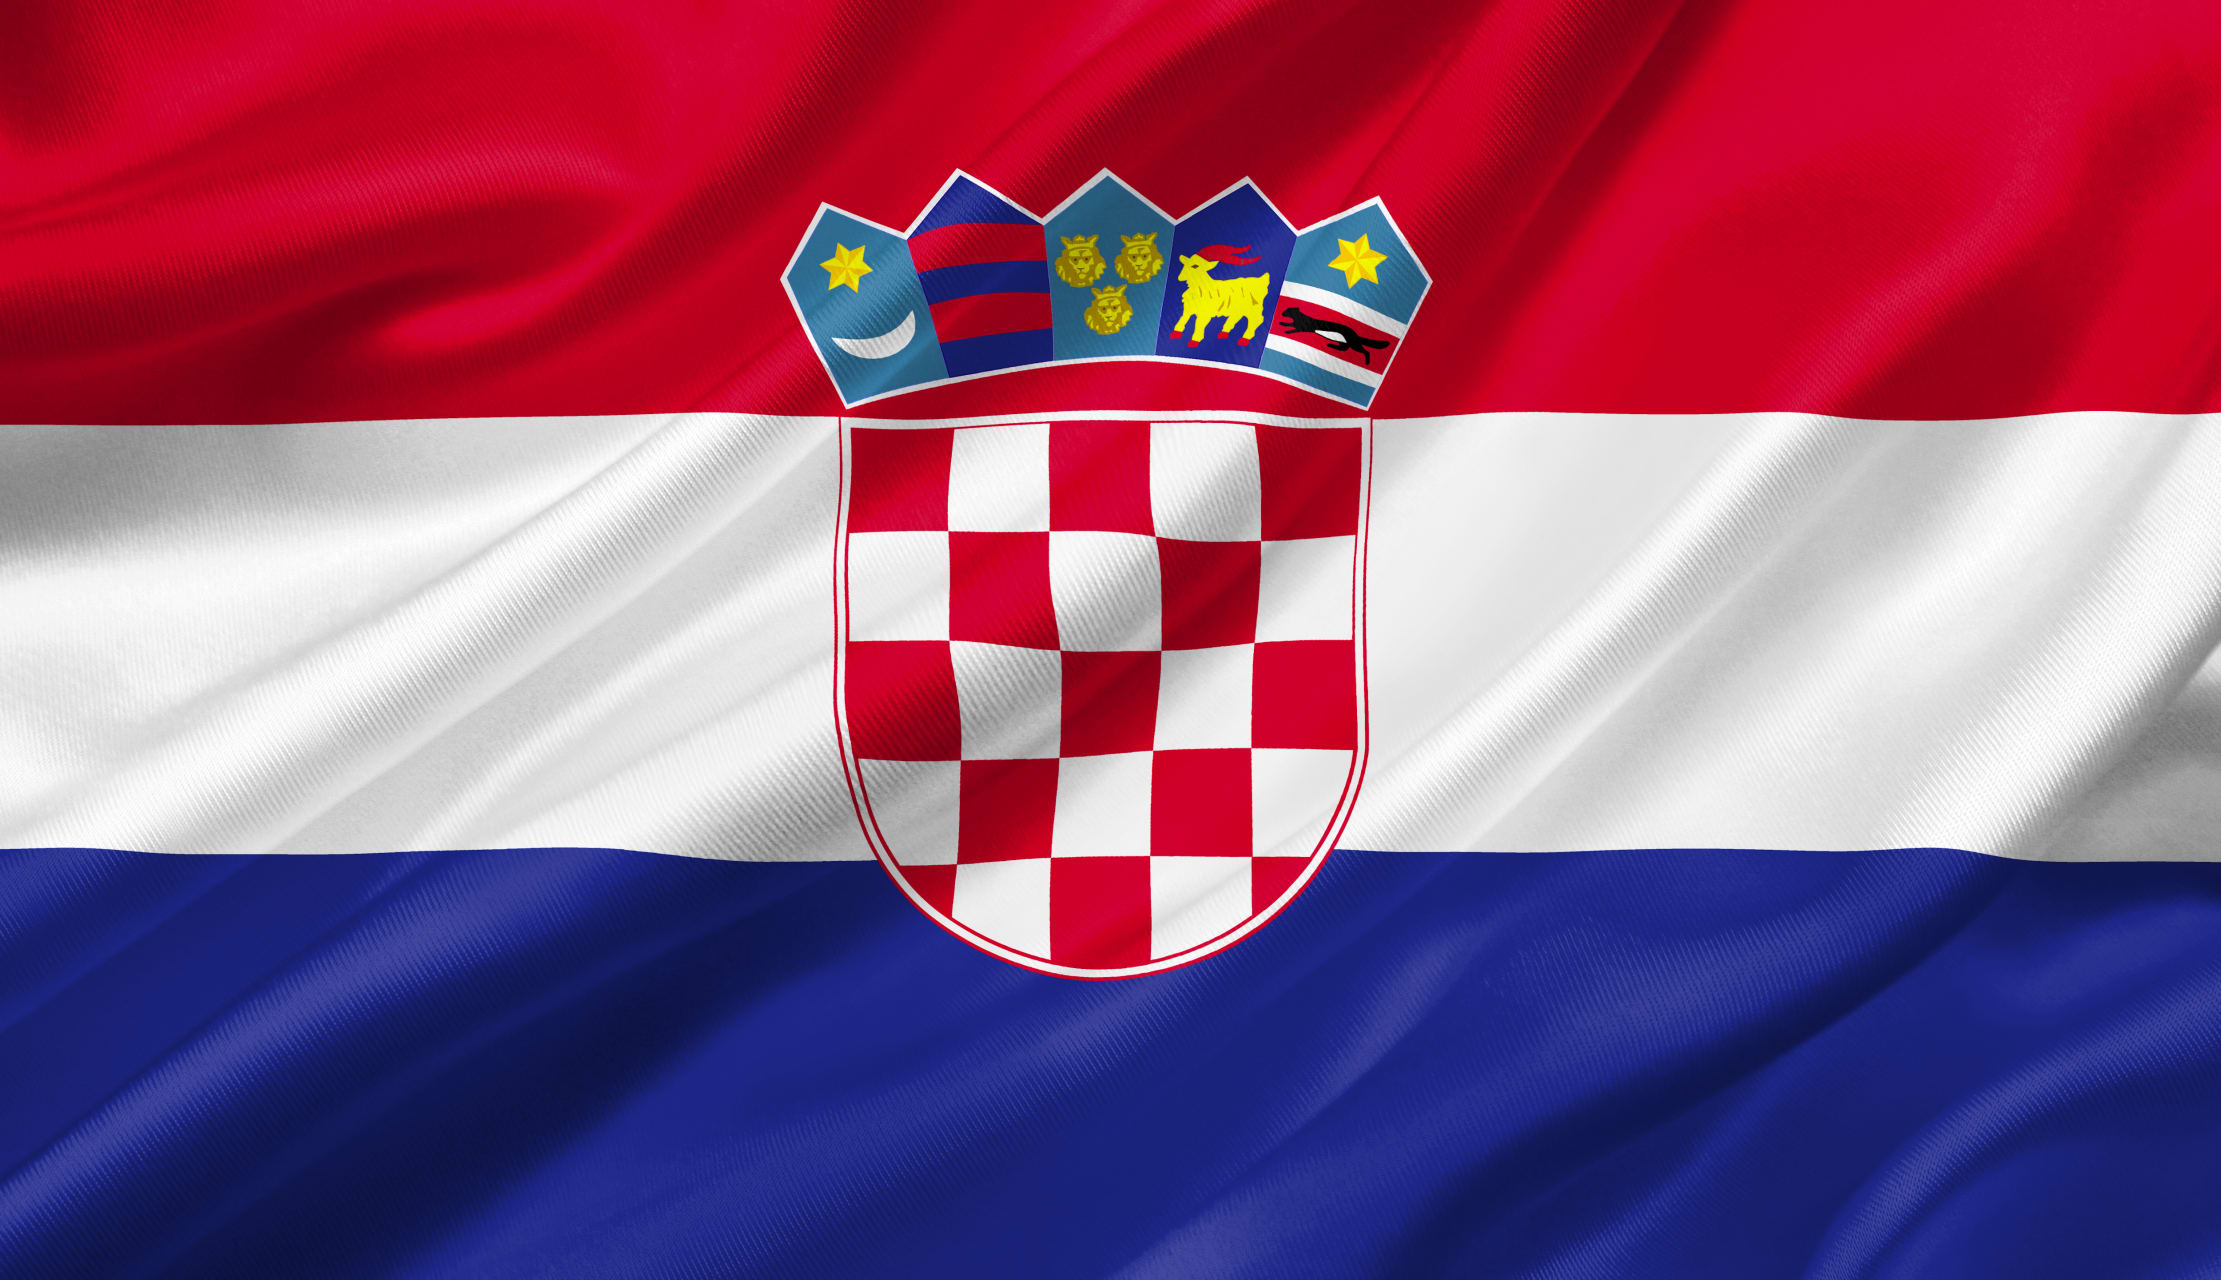 From Croatia with Love